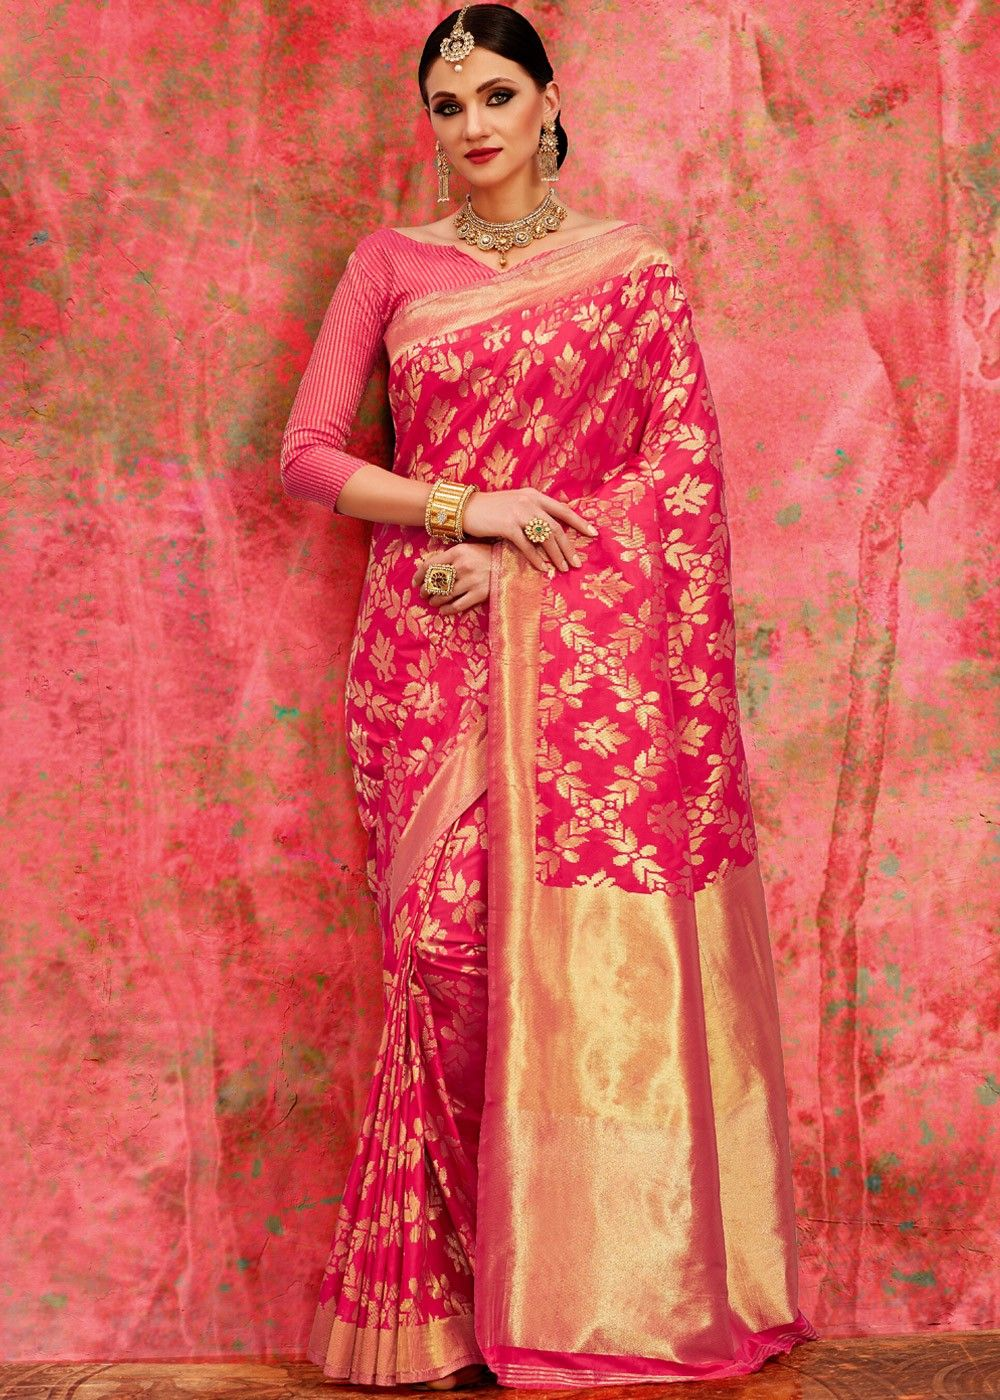 3a3c98347 #Pink #banarasi #silk #saree enhanced by all over foil print with  distinctive #pallu design and heavy border throughout.